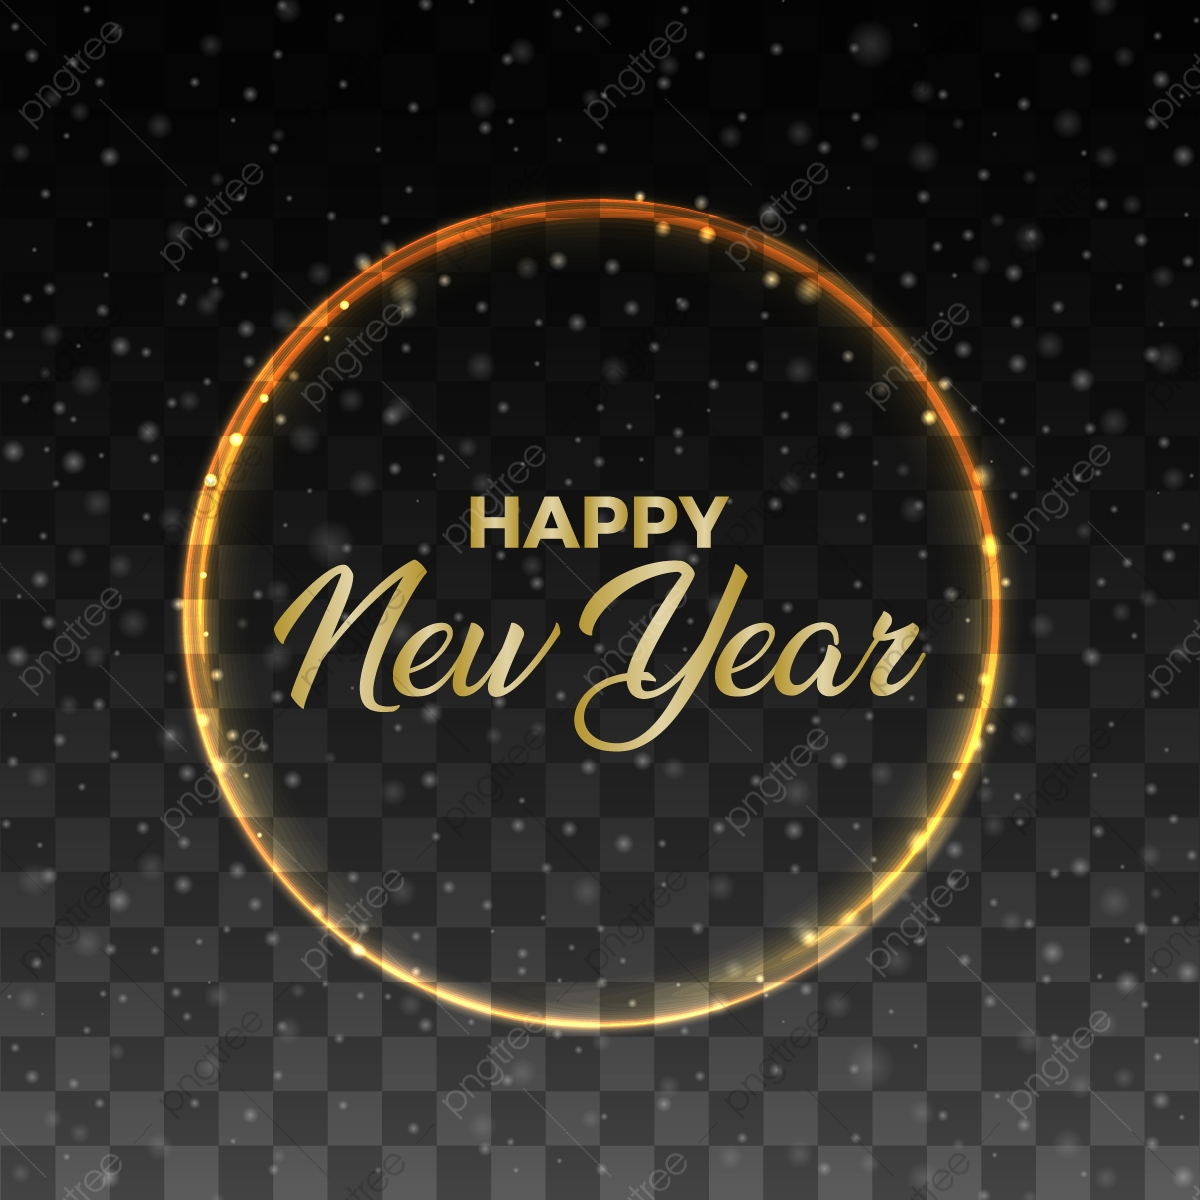 Happy New Year Transparent Background 50